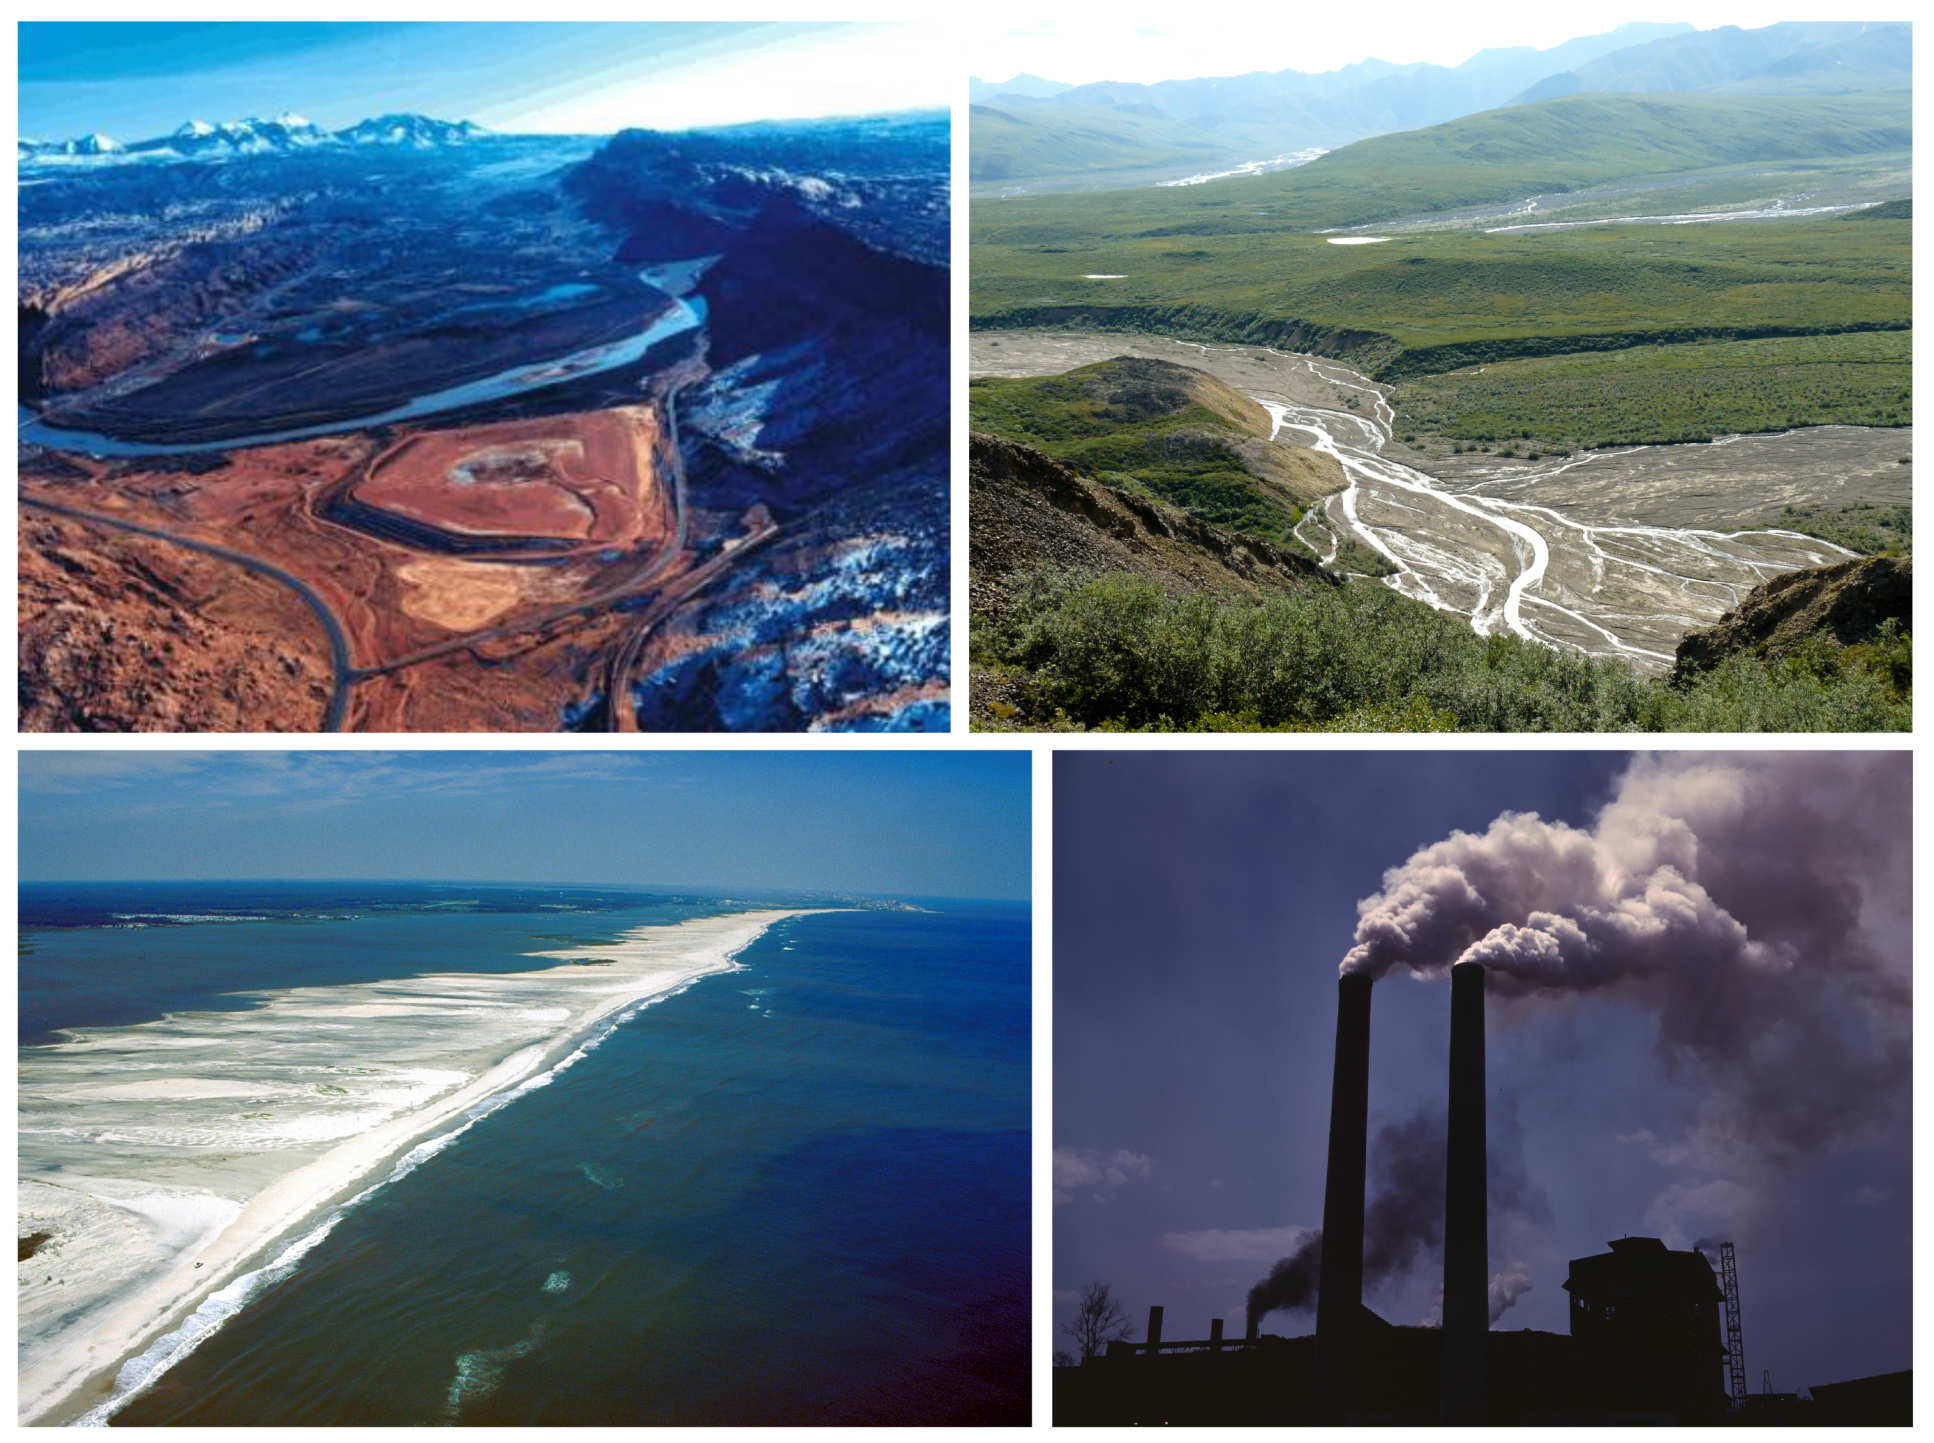 [Top left] View of the uranium mill tailings pile in Moab, Utah, [Top-right] Sediment transport within Toklat river, Alaska, USA,[ Bottom-left] Coastal sediment transport at Assateague Island, Maryland, USA, [Bottom-right] Air pollution from fossil-fuel power station